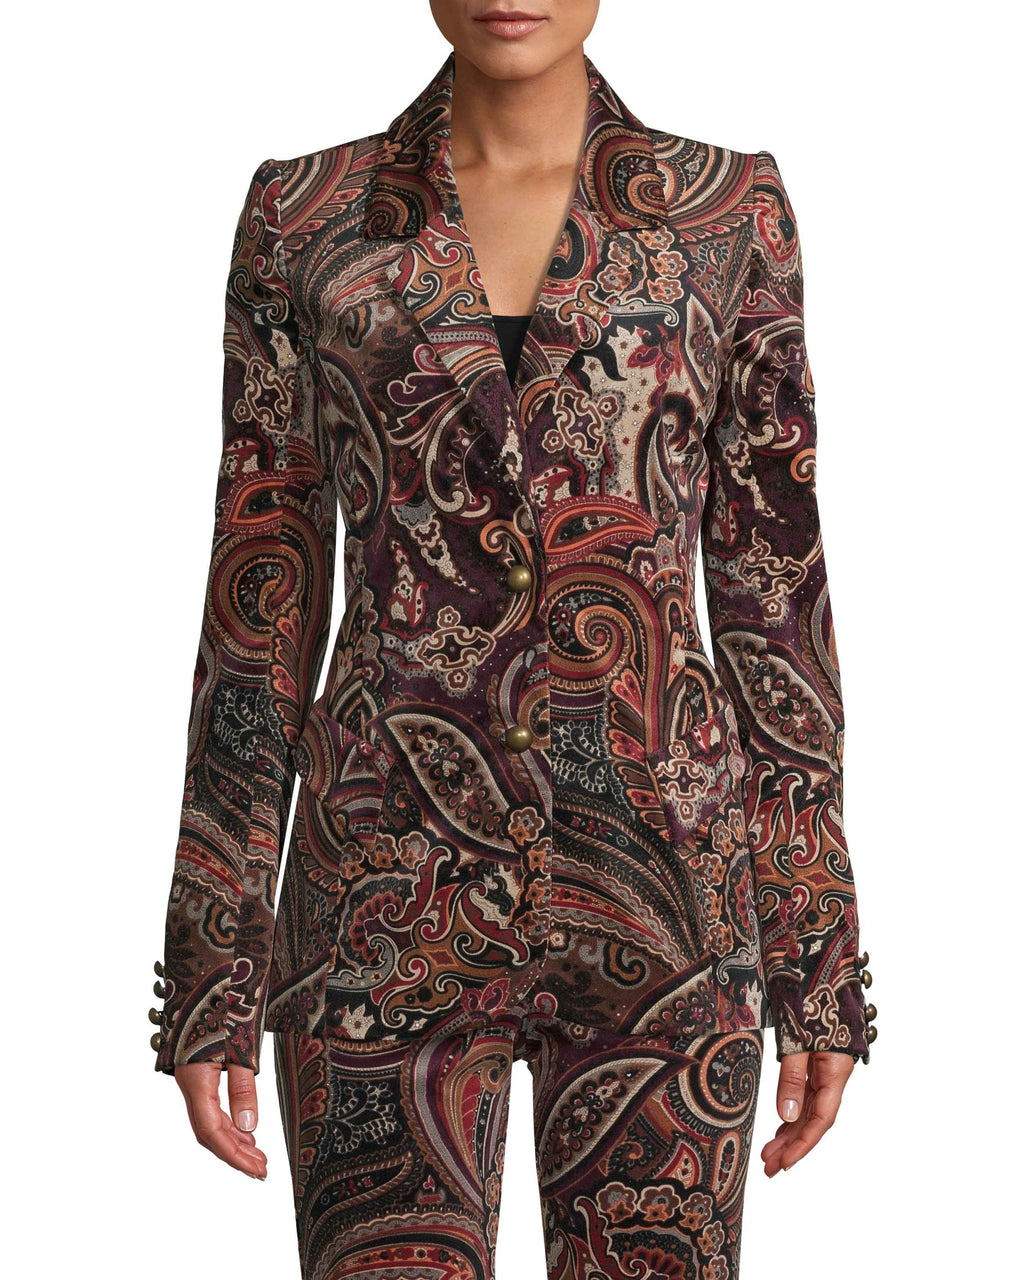 CJ18122 - PAISLEY VELVETEEN BLAZER - outerwear - blazers - This runway style is designed in a classic blazer silhouette but in statement velvet paisley. This fitted piece is perfectly tailored to slim and elongate your figure. Featuring matte gold buttons on the front and along the cuffs. Add 1 line break Stylist tip: Pair with the matching pants or skirt for a statement fit.